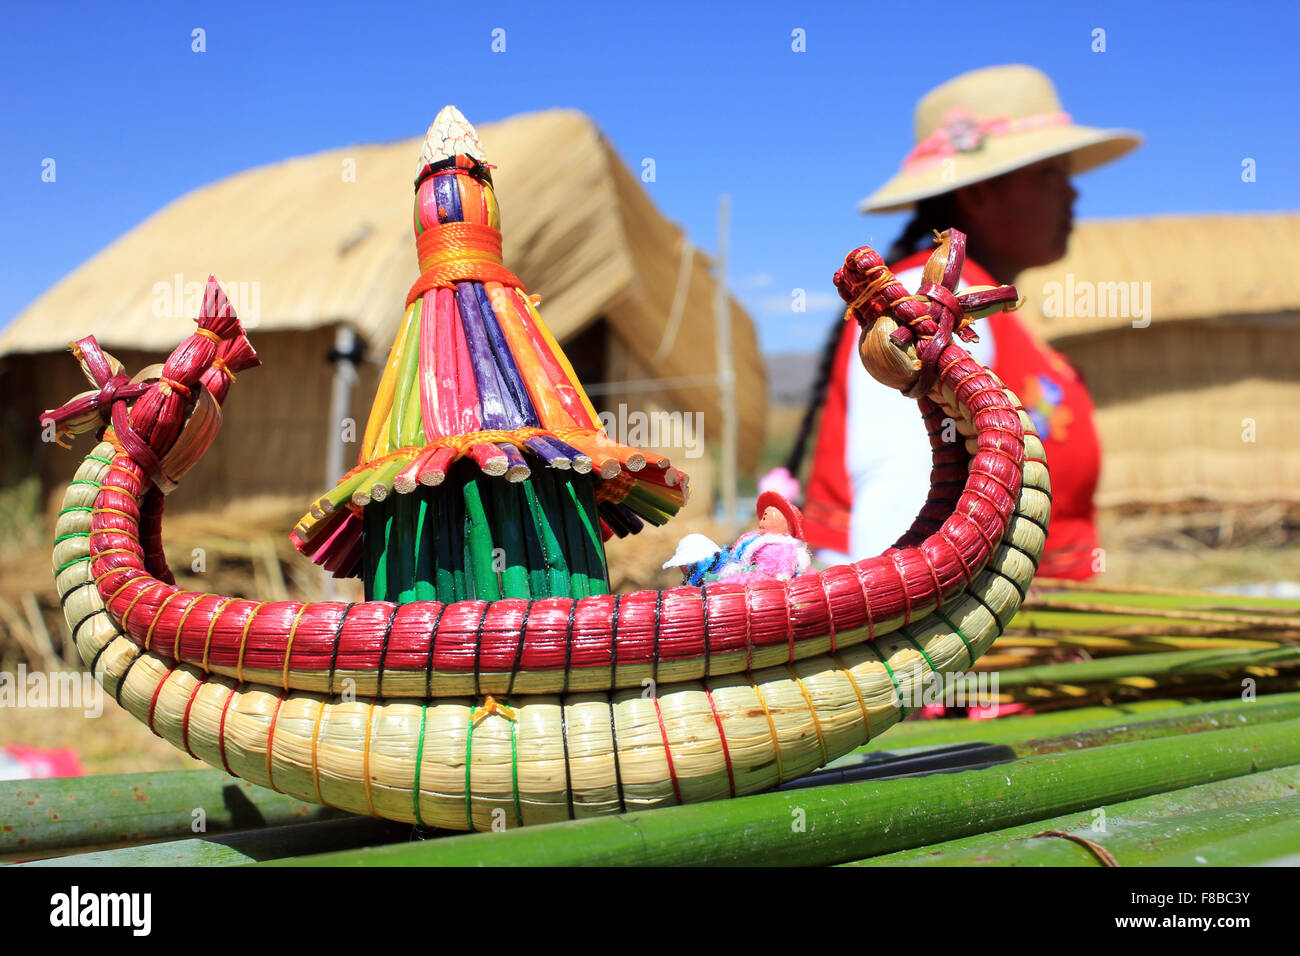 Traditional Handicrafts From The Uros Indian Community, Lake Titicaca, Peru Stock Photo